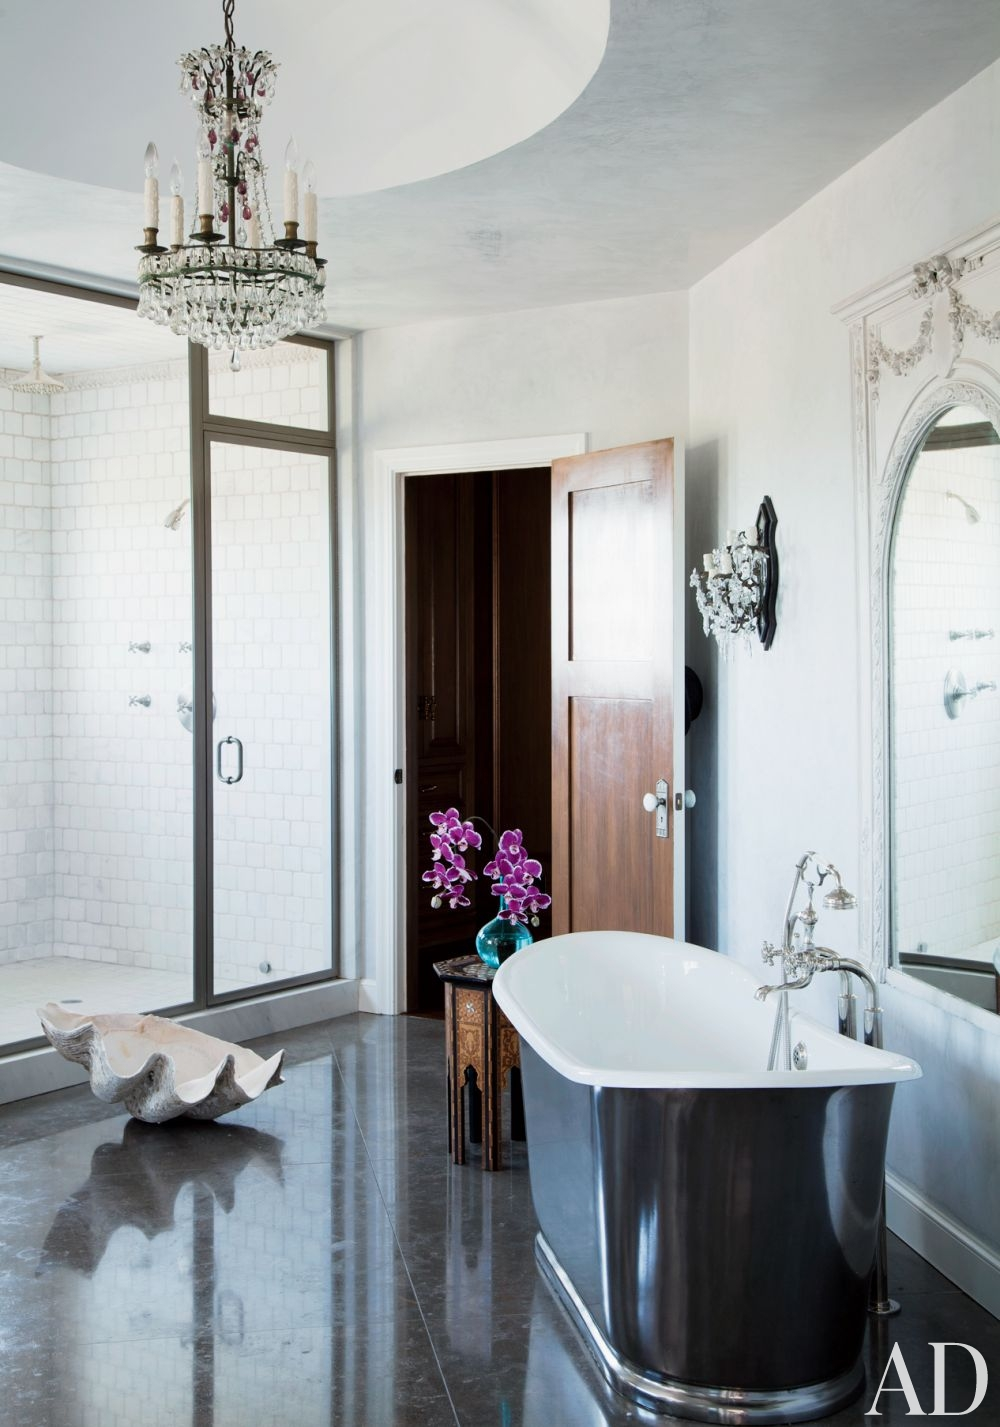 10 Bathroom Upgrades You Can Do This Weekend Betterdecoratingbiblebetterdecoratingbible